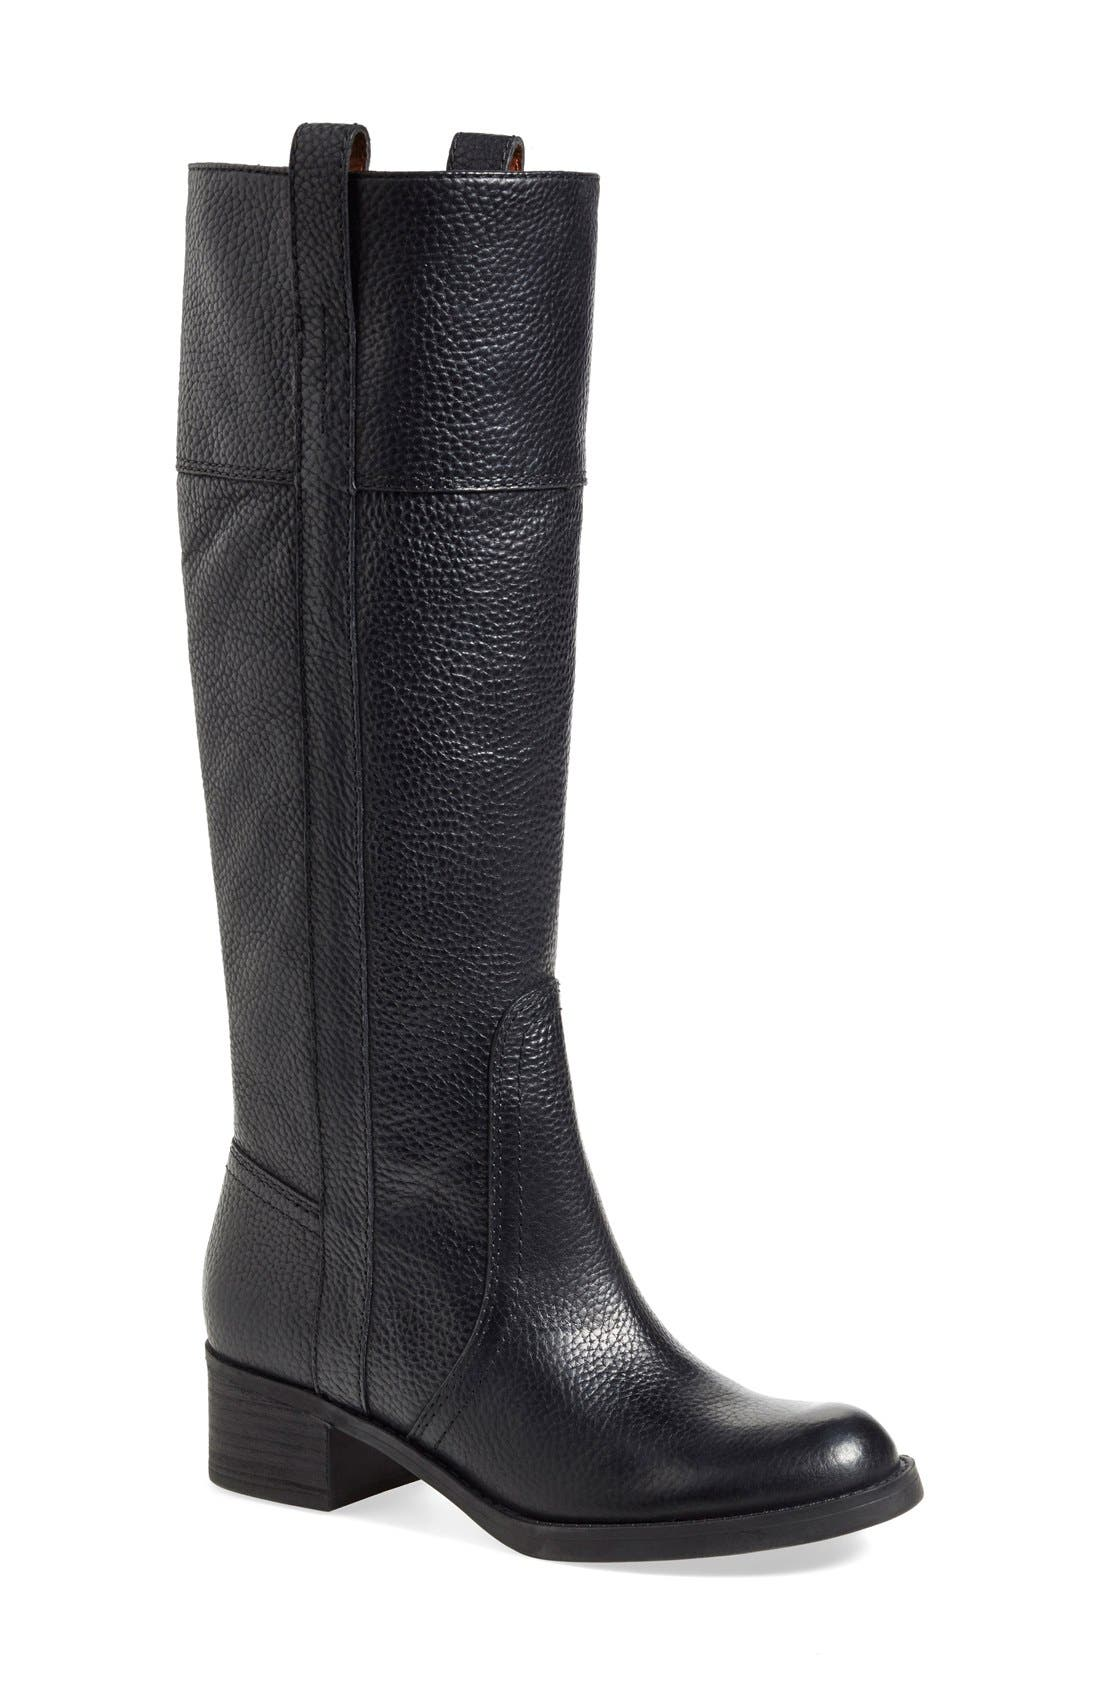 LUCKY BRAND,                             'Heloisse' Boot,                             Main thumbnail 1, color,                             001